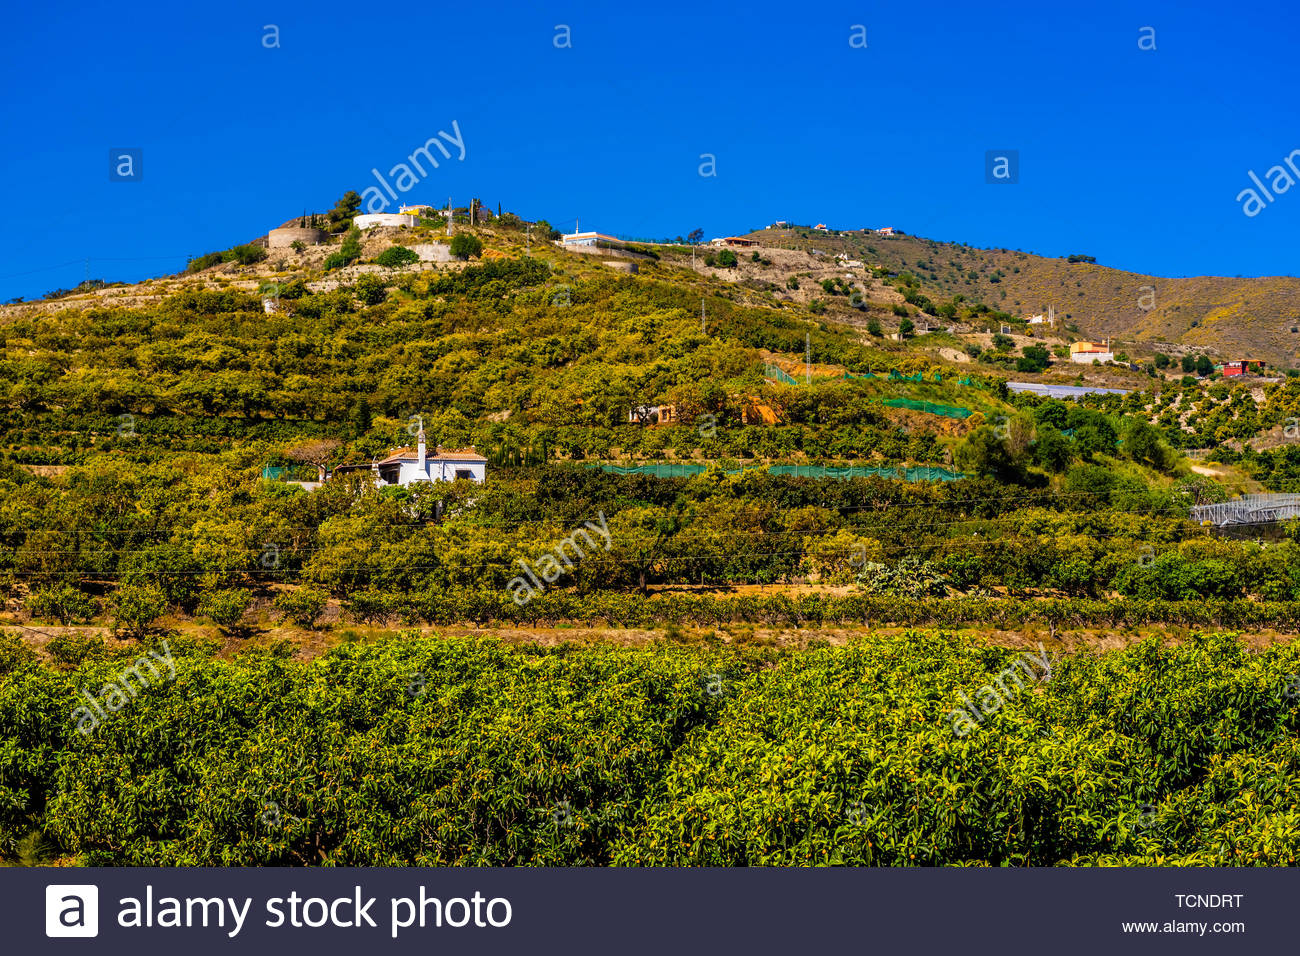 View from the town of Salobrena on the Costa Tropical of Granada Province, Spain with its Moorish castle atop the hill. Stock Photo